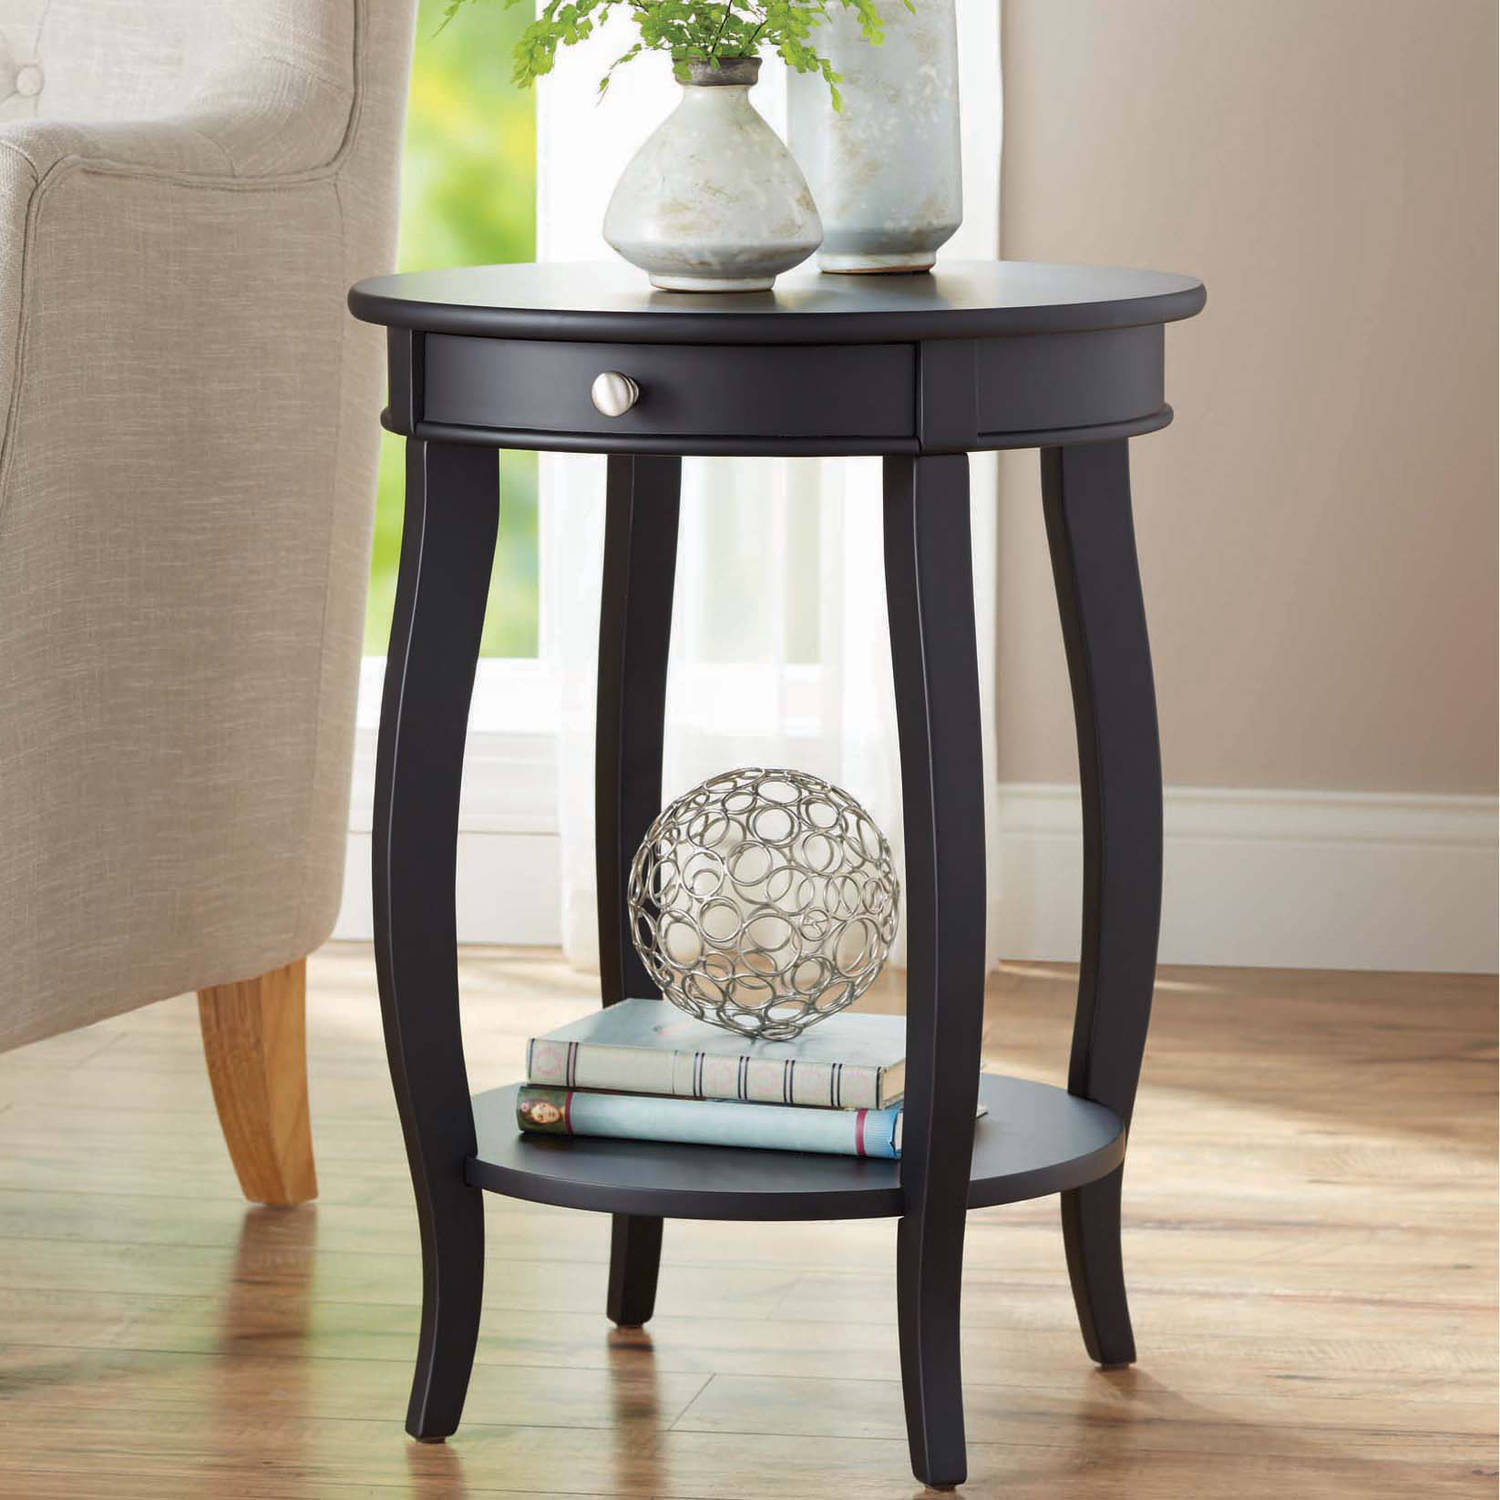 better homes gardens round accent table with drawer multiple black colors small couch end tables mirror bedside target classic furniture design metal chair legs white living room